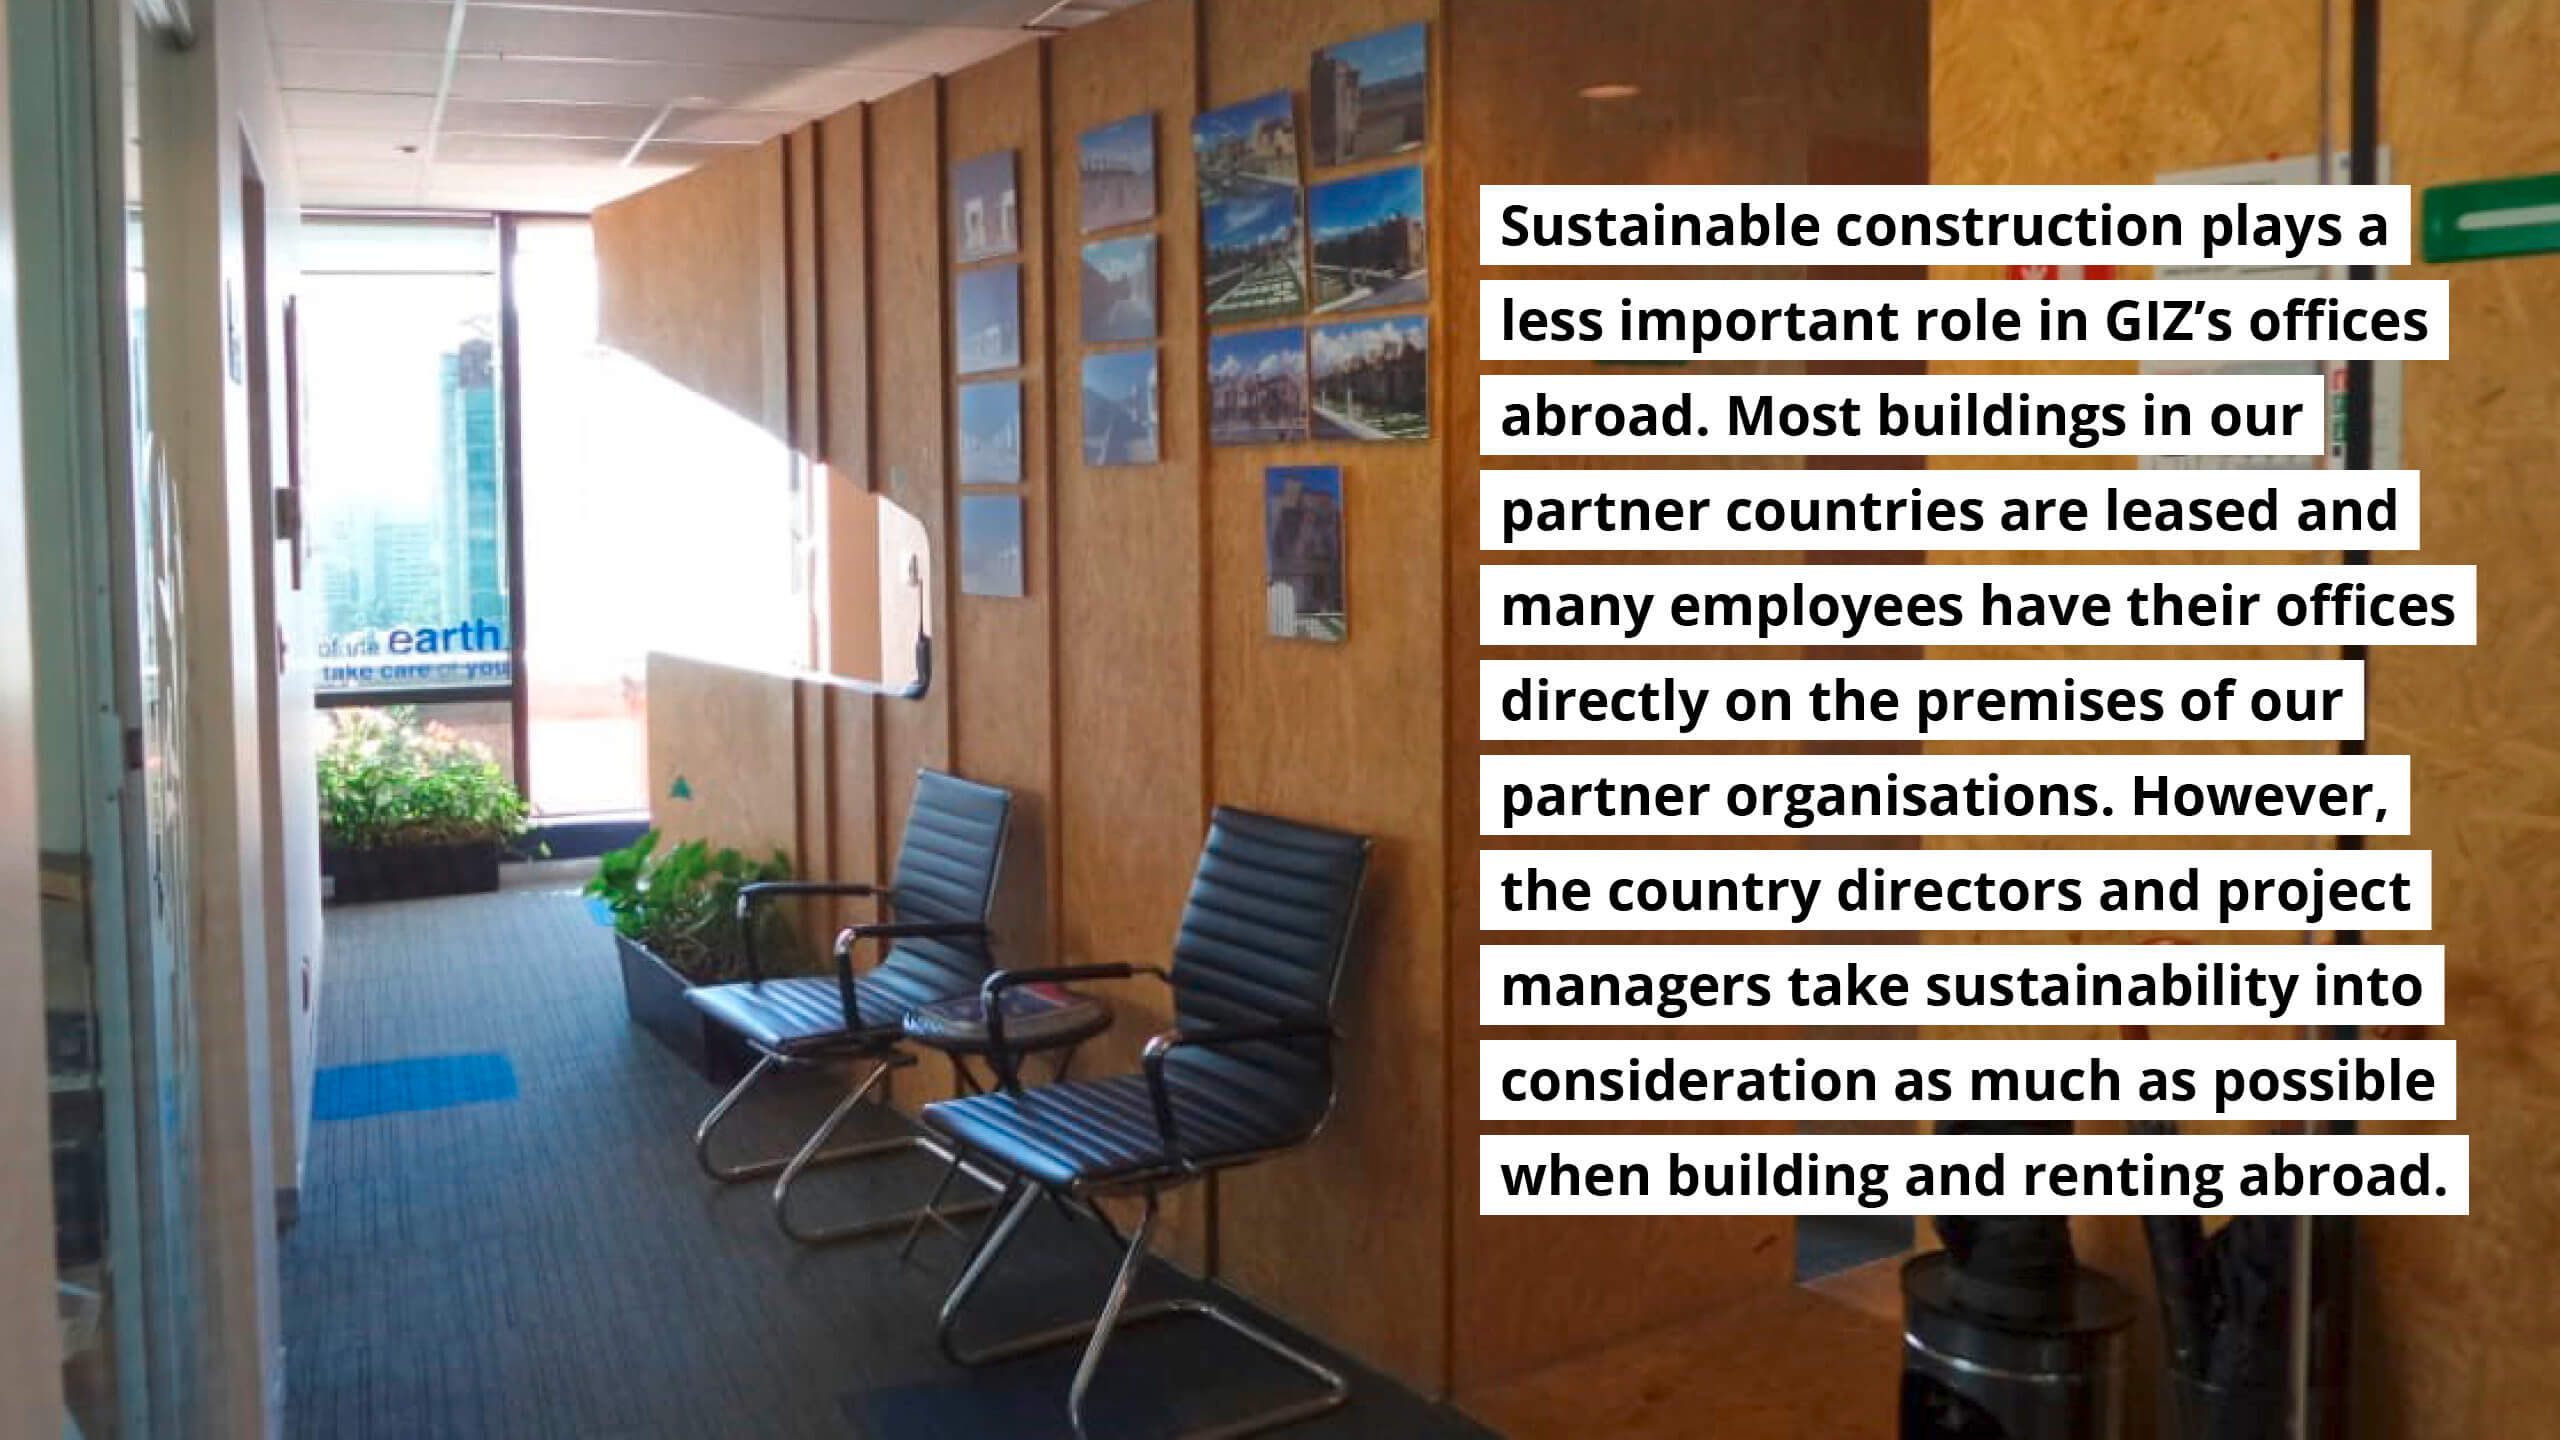 Sustainable construction plays a less important role in GIZ's offices abroad. Most buildings ate leased and employees have their offices on the premises of our partner organisations. However, the country directors and project managers take sustainability into considerationas much as possible when building and renting abroad.